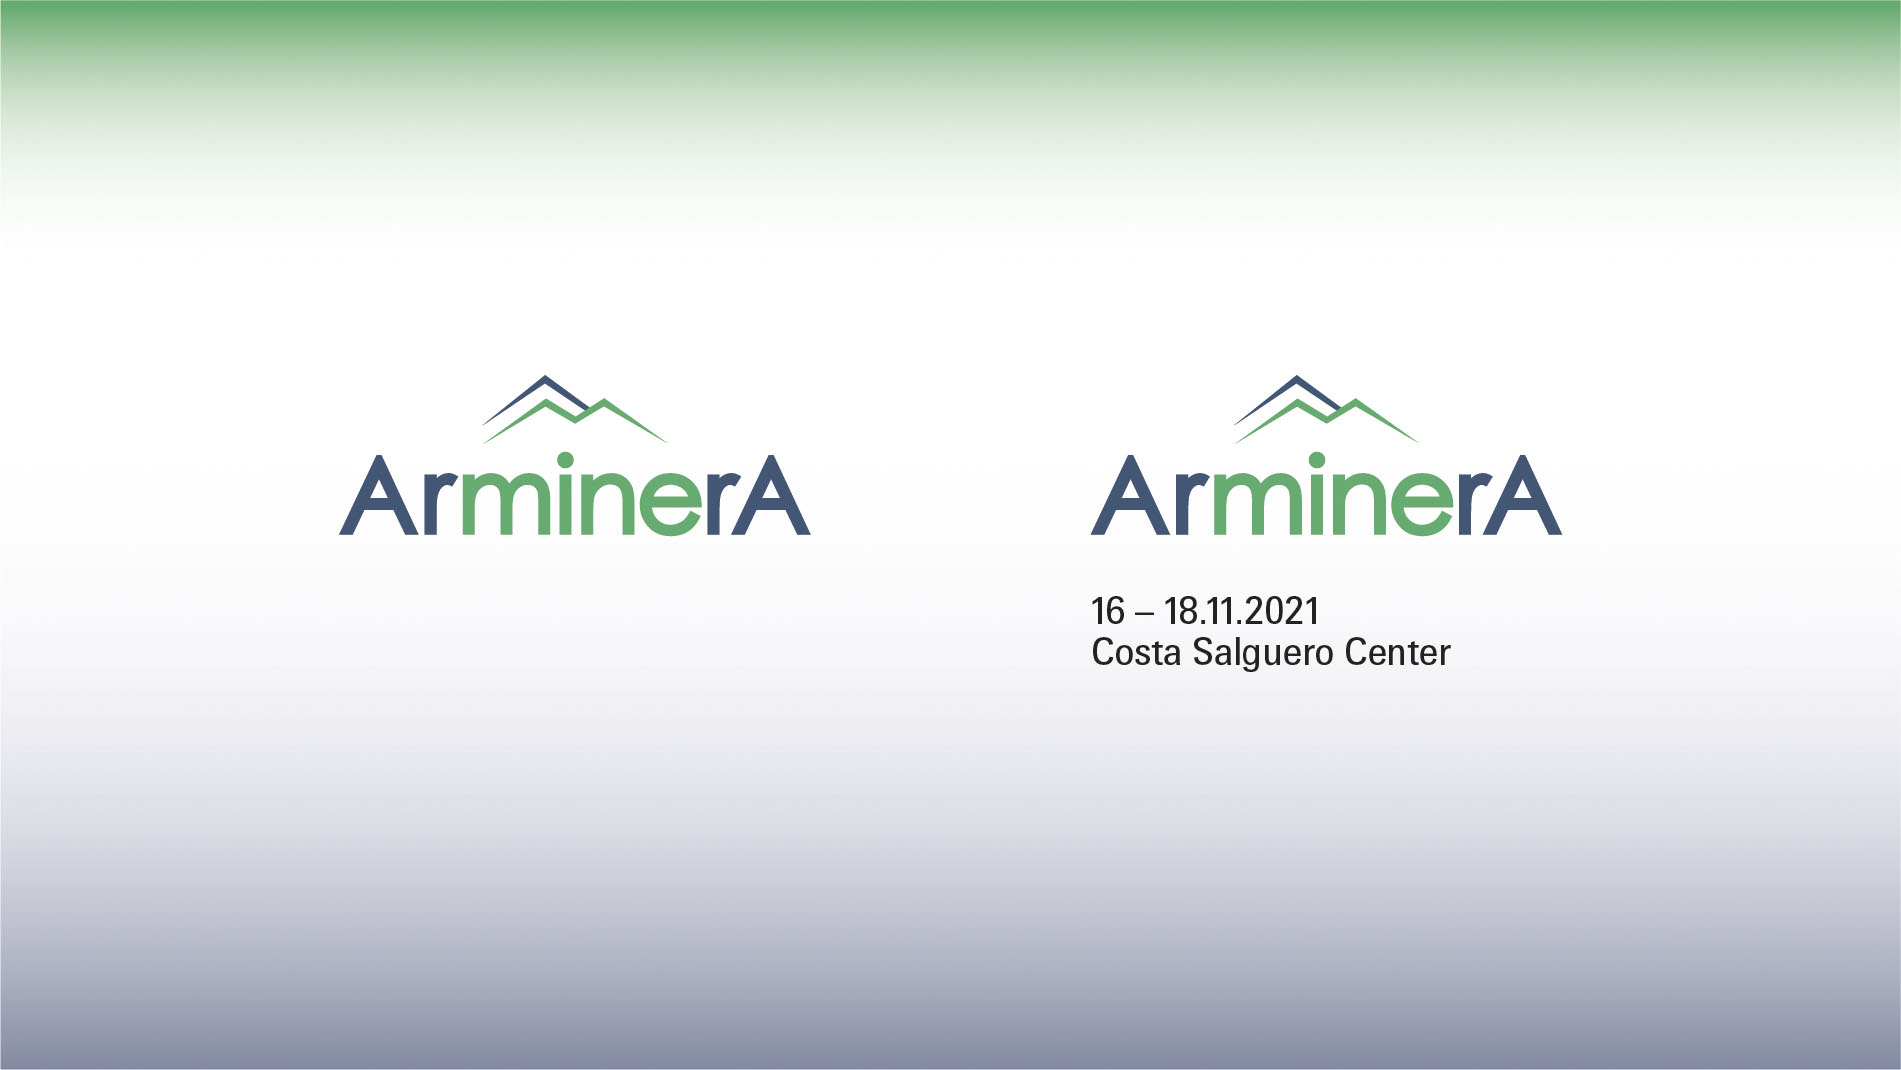 Arminera: Event logo and eye-catching